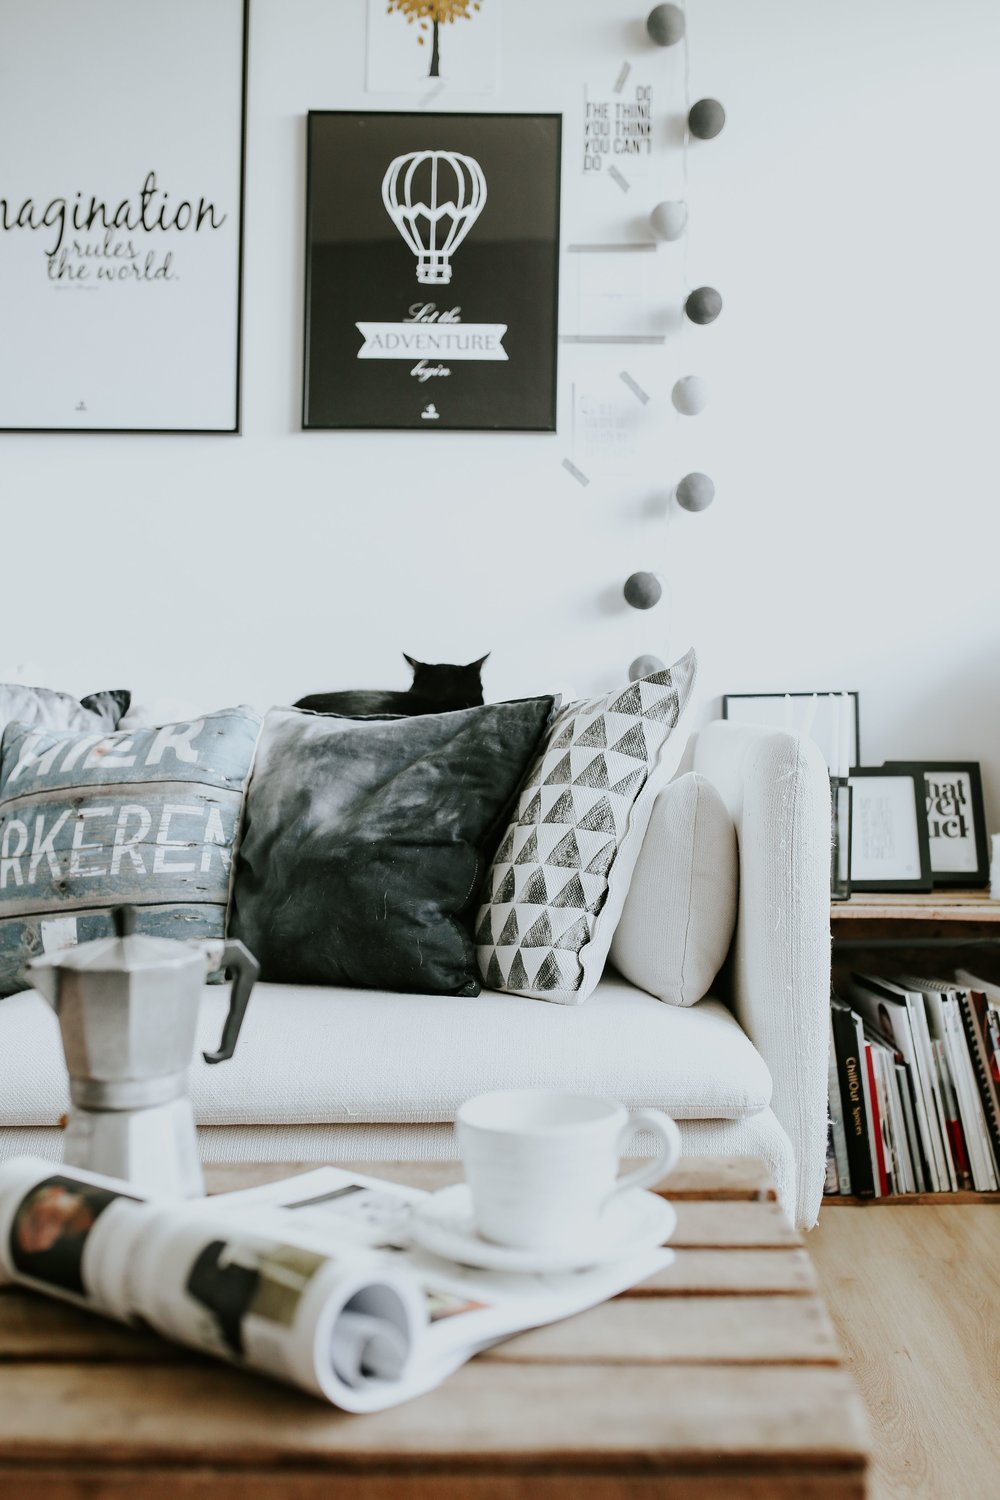 kaboompics_Contemporary black-and-white home decor.jpg